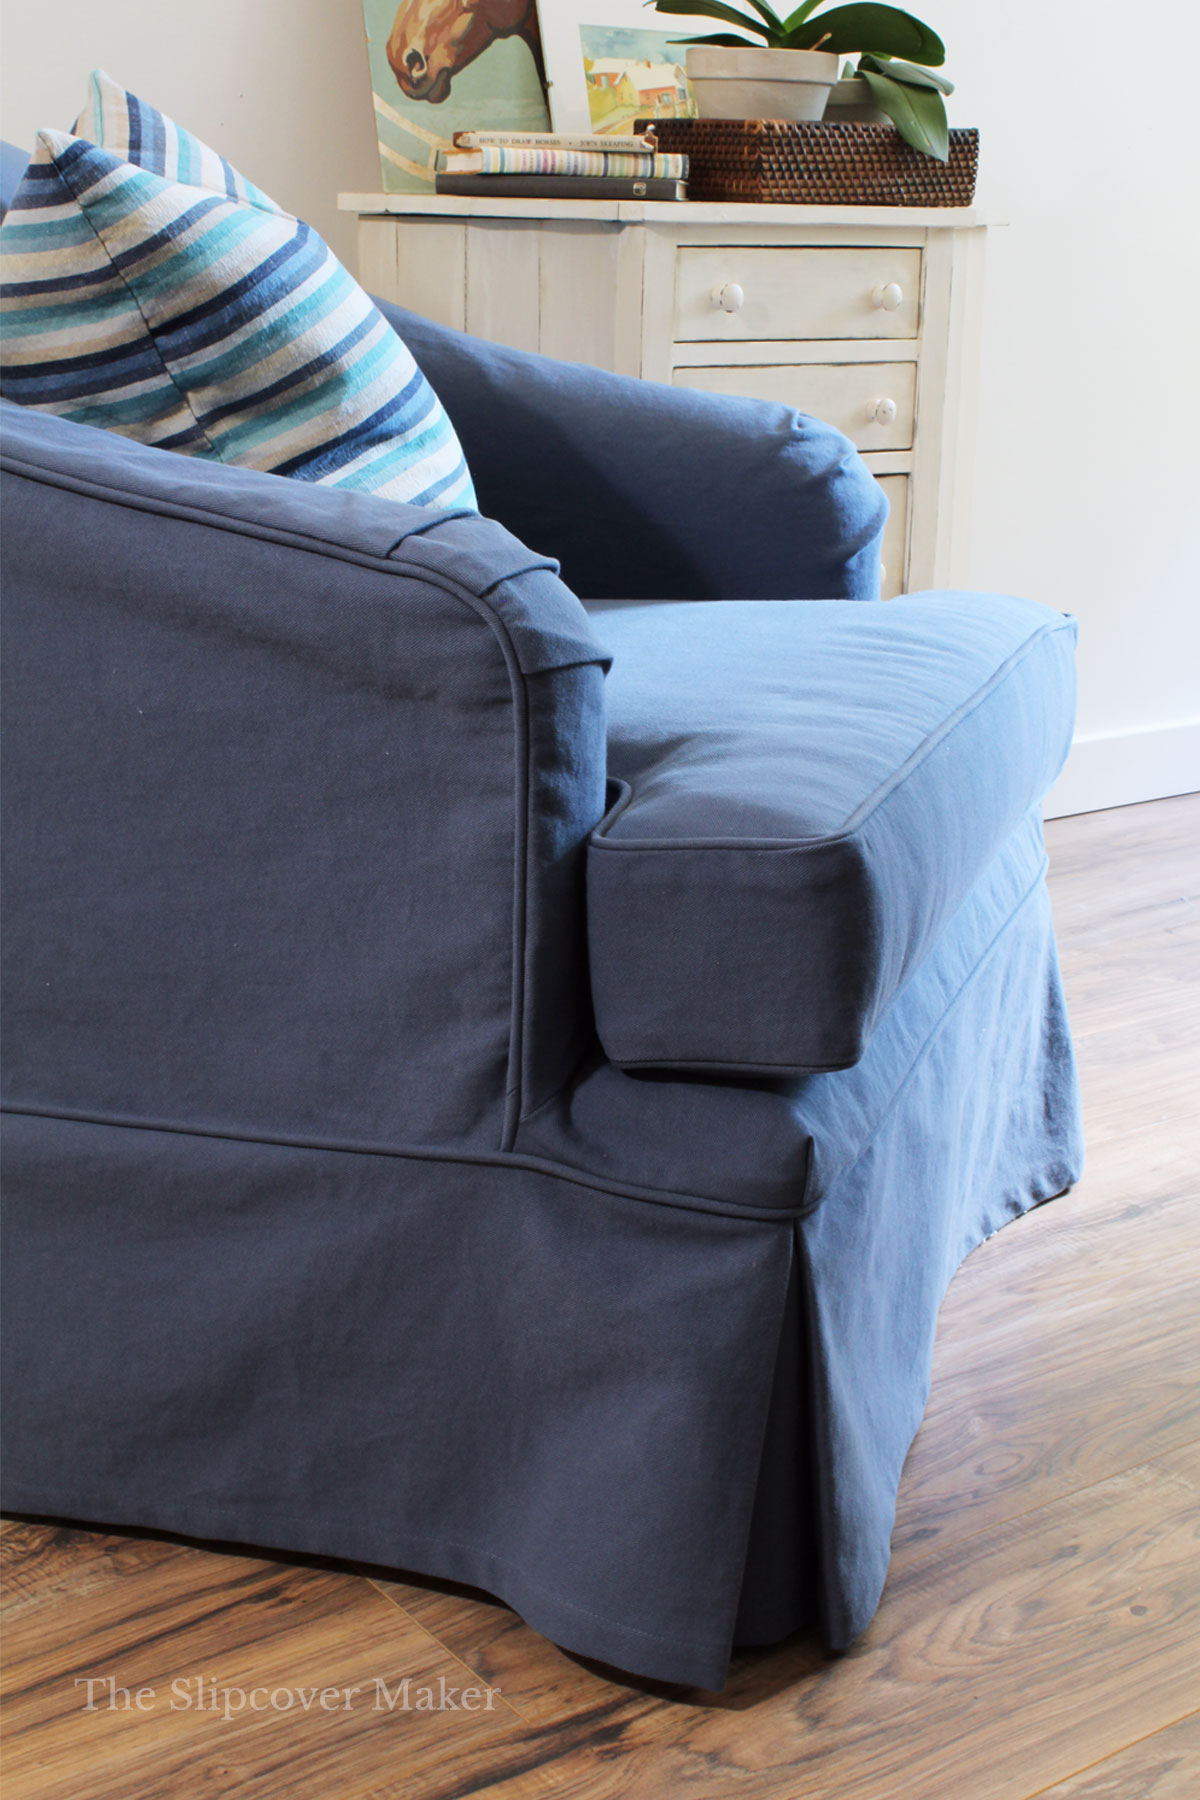 Slipcover Pin Fit Tutorial Part 4: Skirt & Cushion Cover